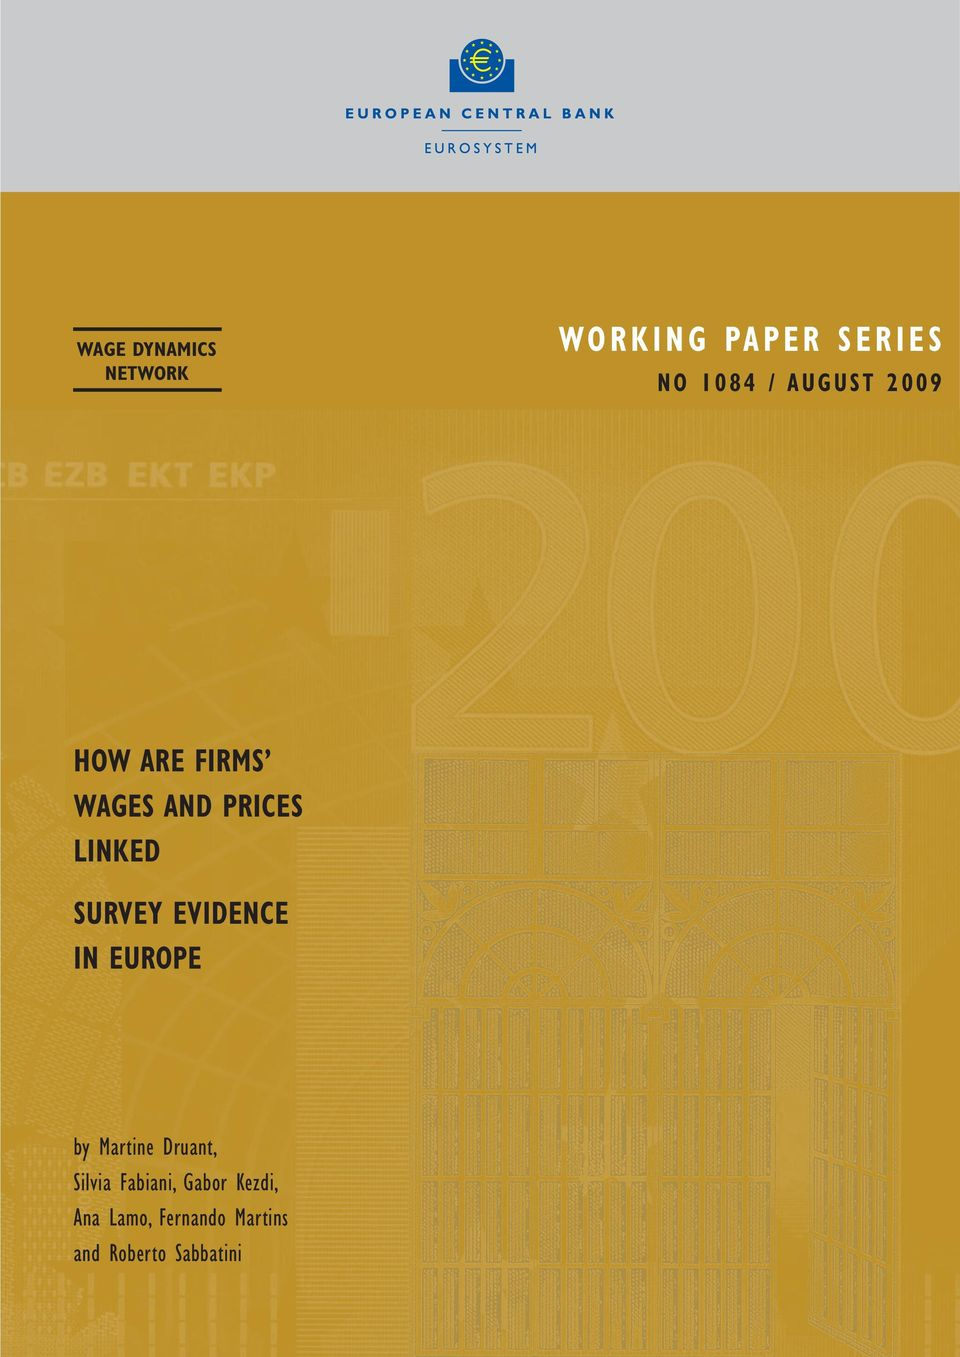 evidence in europe by Martine Druant, Silvia Fabiani,